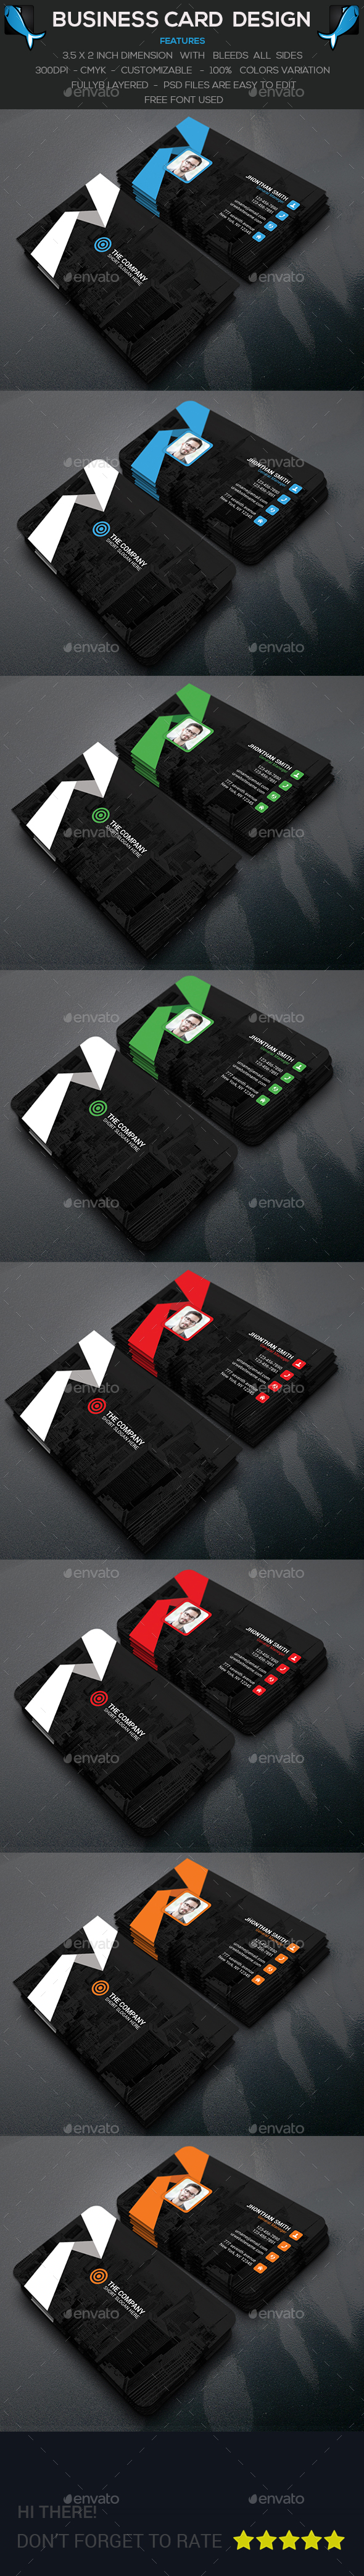 Creative Personal Business Card - 10 PSD File - Corporate Business Cards